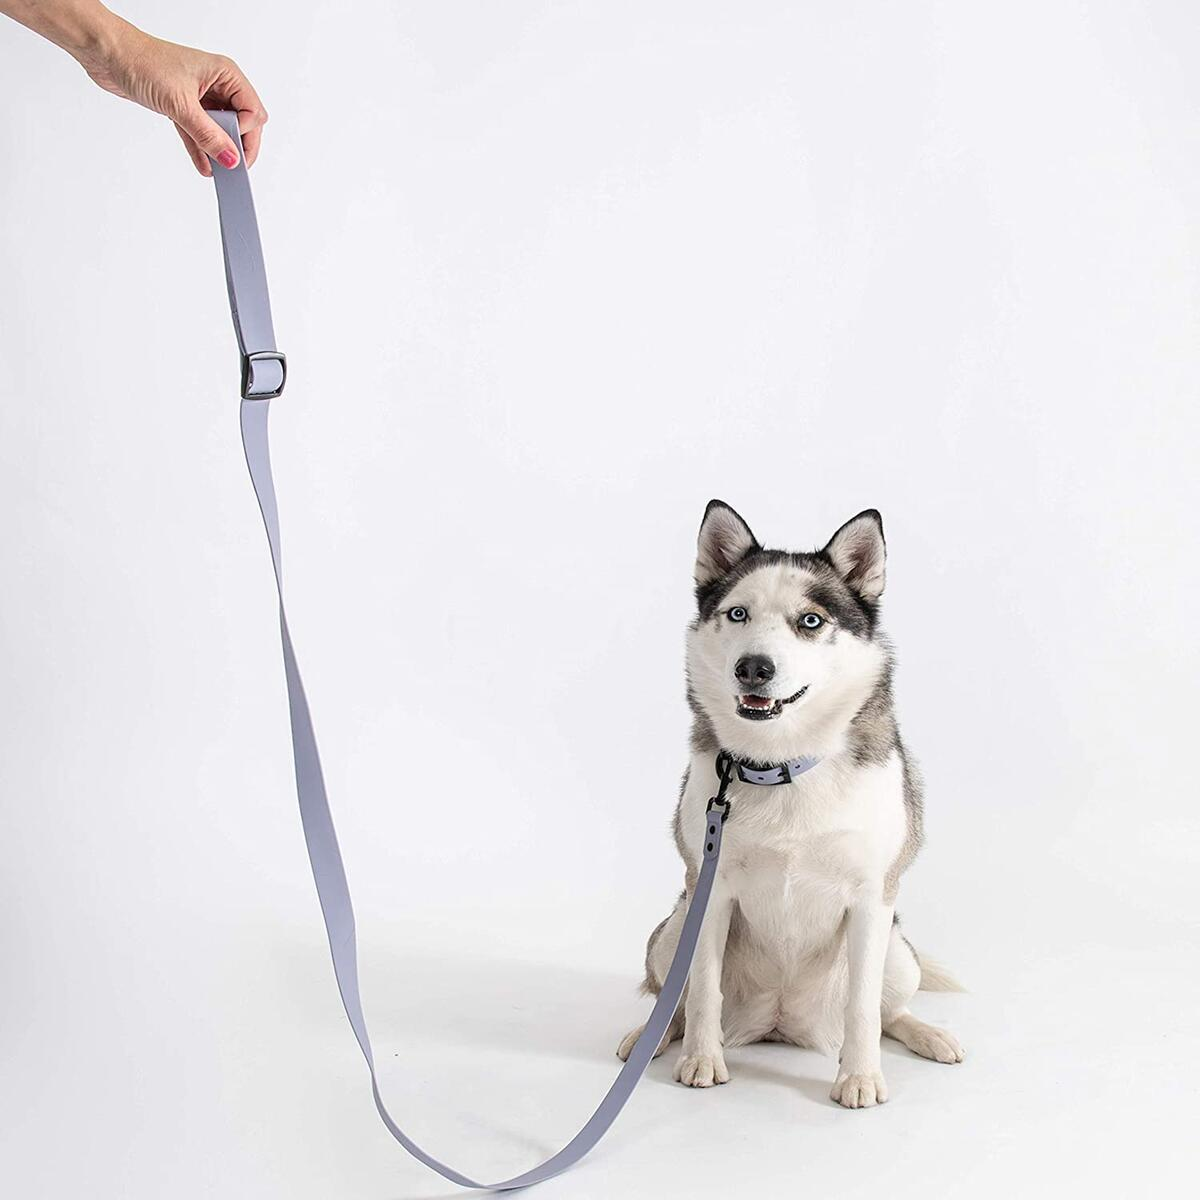 Heavy Duty Dog Leash & Collar Set | Blue Berry Lilac 6FT-Nylon Dog Leash Comfortable Handle, Water Resistant, Easy Hook Collar | Blue Berry Lilac Sturdy Leash and Collar for Medium & Large Dog Breeds